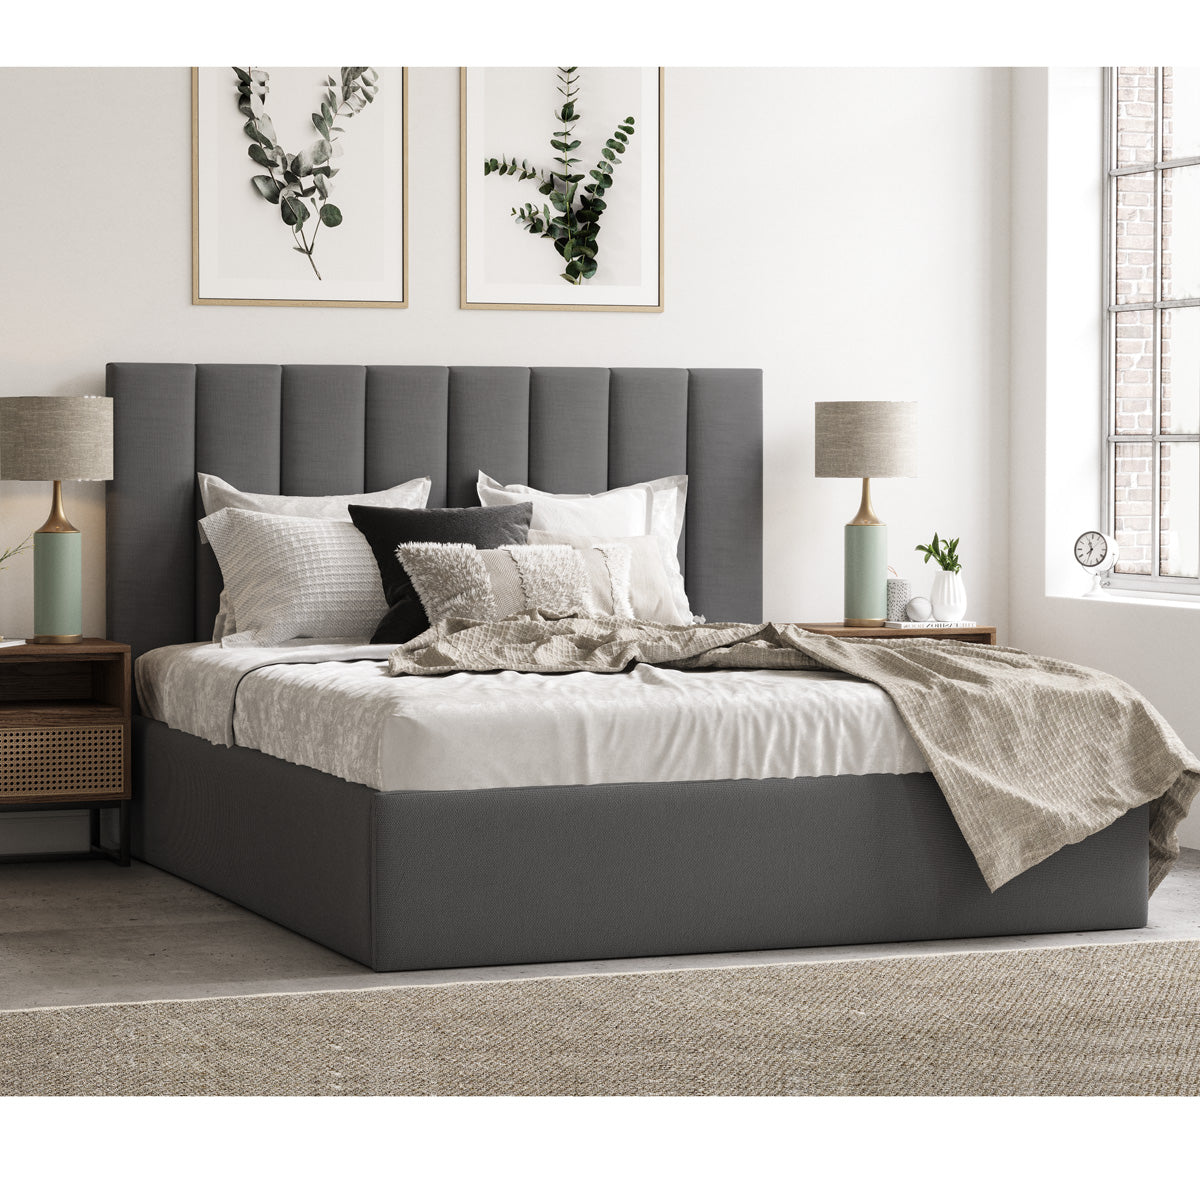 Celine Gas Lift Storage Bed Frame (Charcoal Fabric)